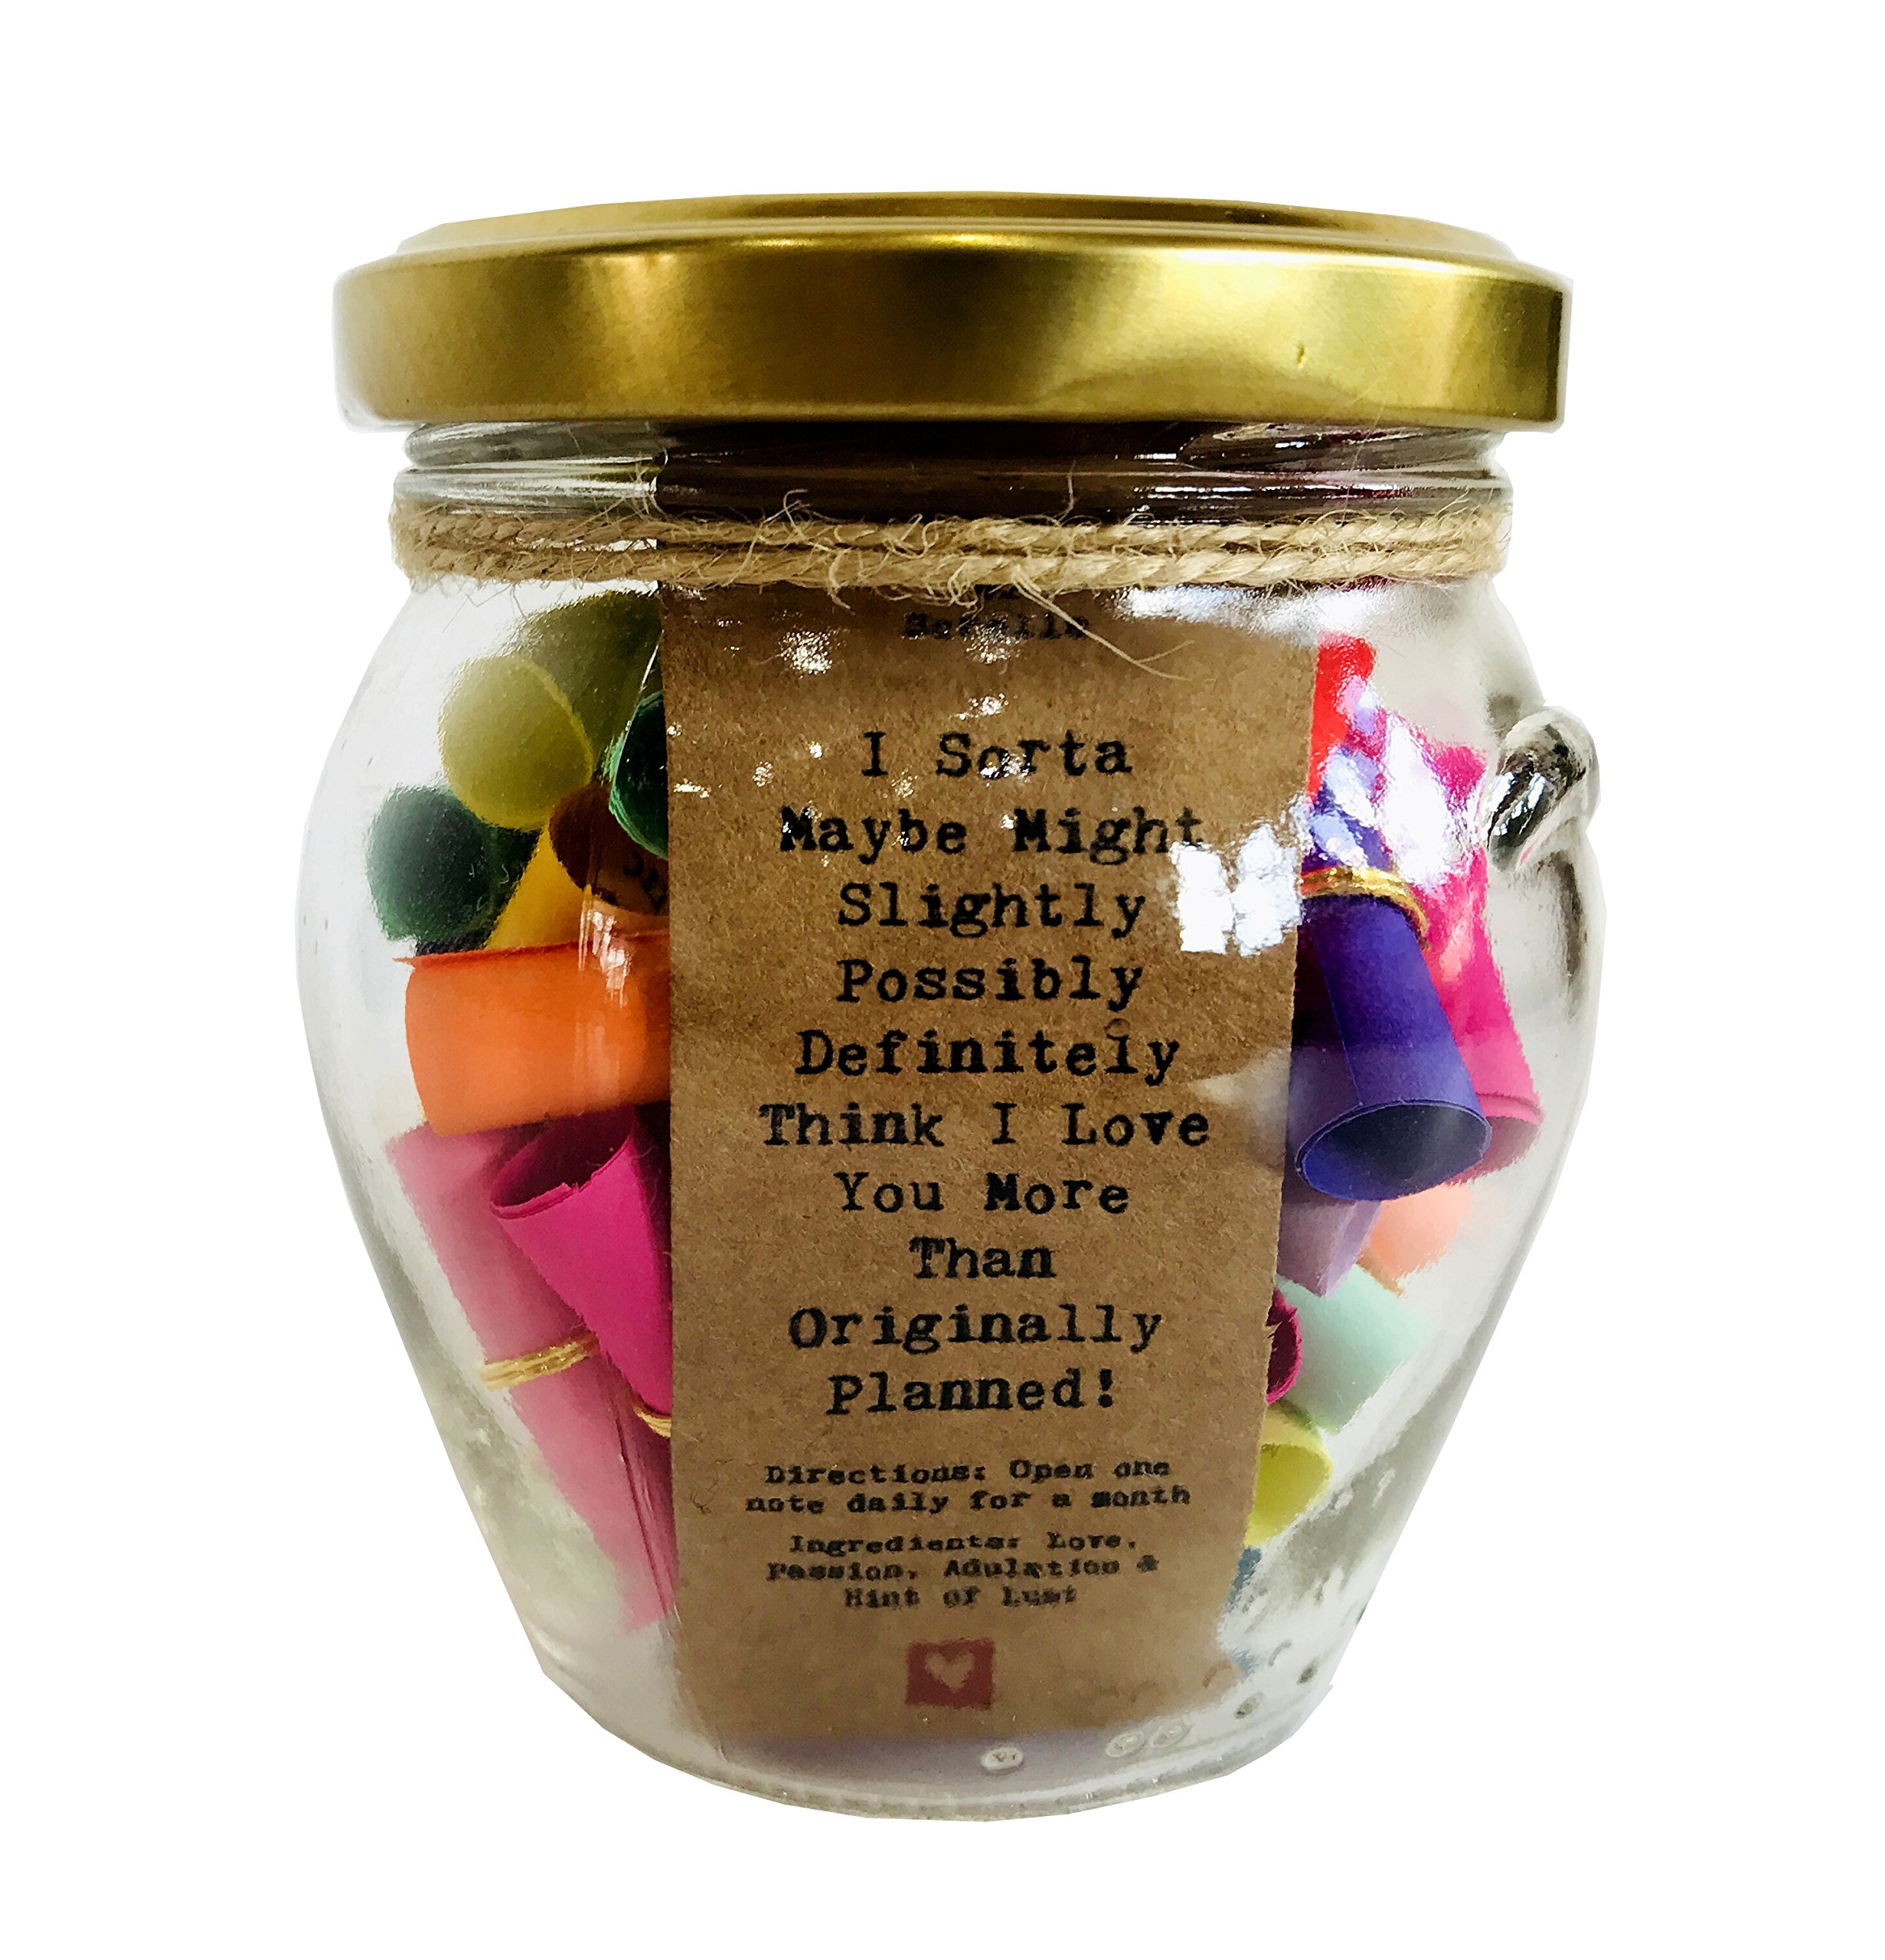 Little Jar of Big Ideas I Sorta Maybe Might Slightly Possibly Definitely Think I Love You More Than Originally Planned - Thoughtful Gift - Unique Present - Artisan Handcrafted Gift by Little Jar of Big Ideas